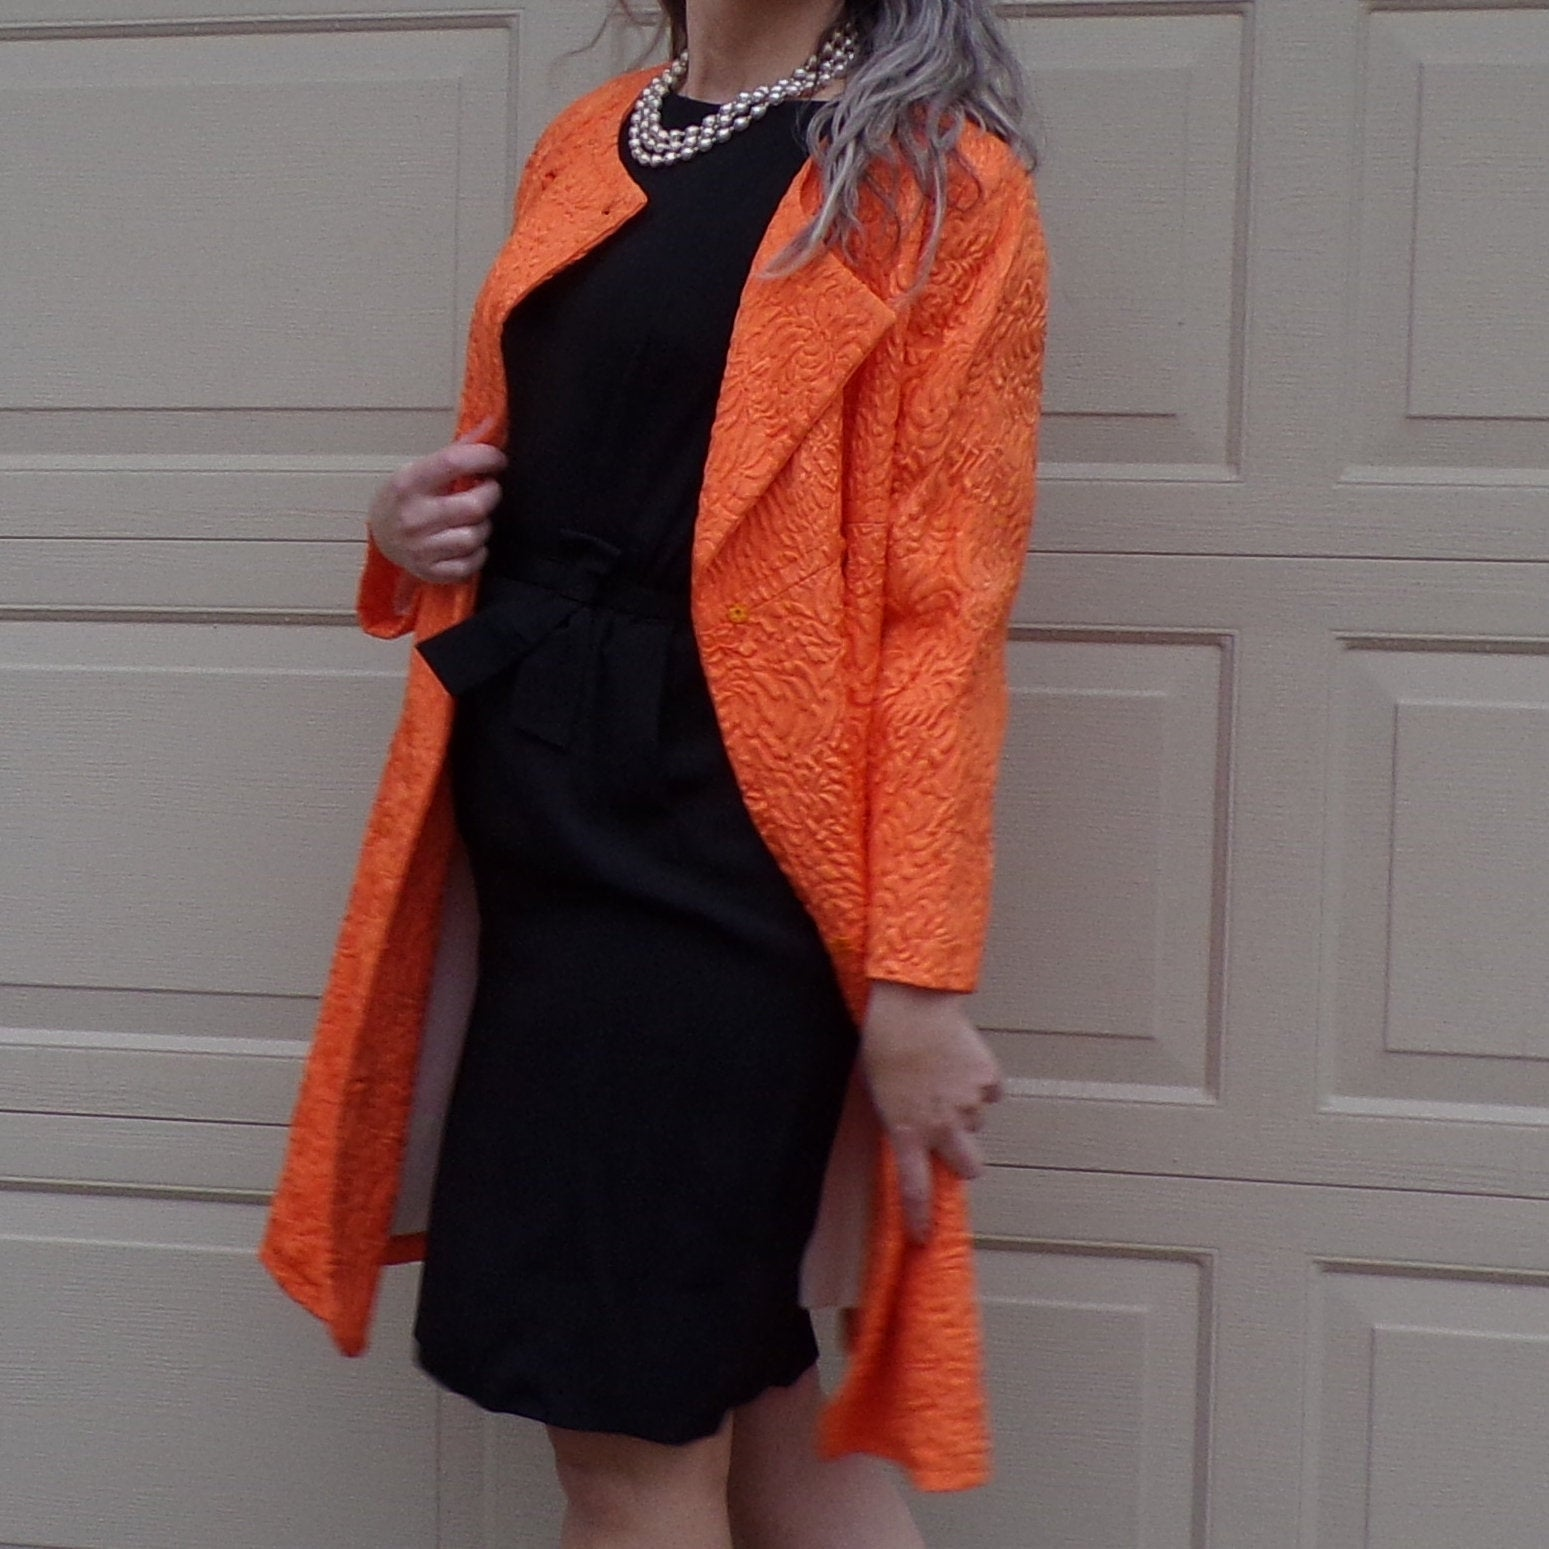 ORANGE embossed sateen SPRING COAT jacket vogue 1950's 1960's S M (K2)